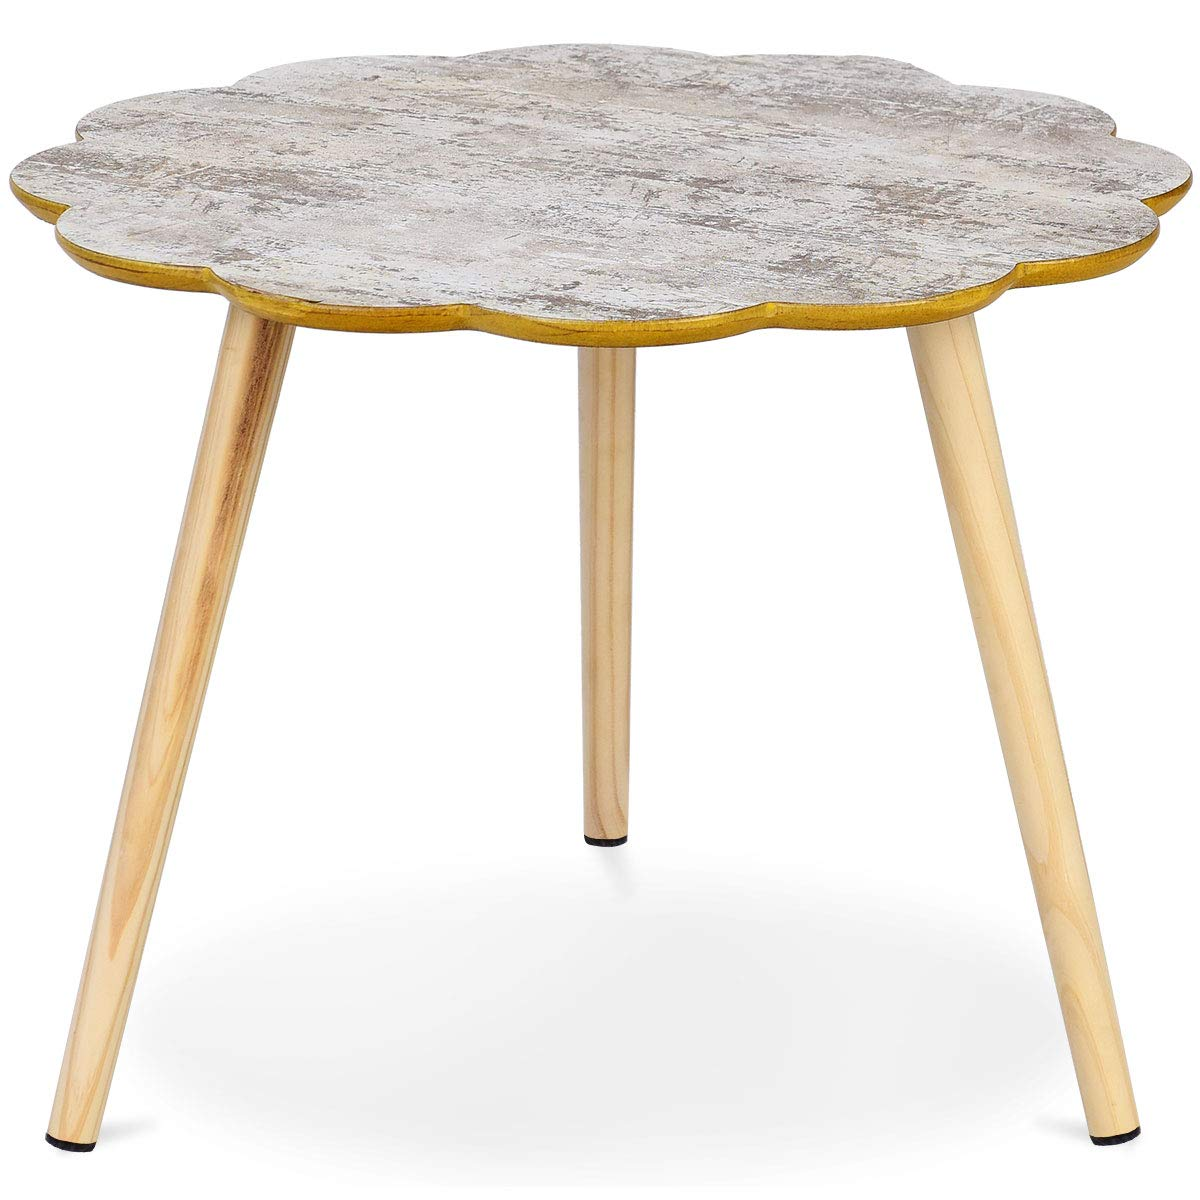 Giantex Nesting Table Flower Shaped Coffee Table Sofa Side Table Accent Home Living Room Furniture End Table by Giantex